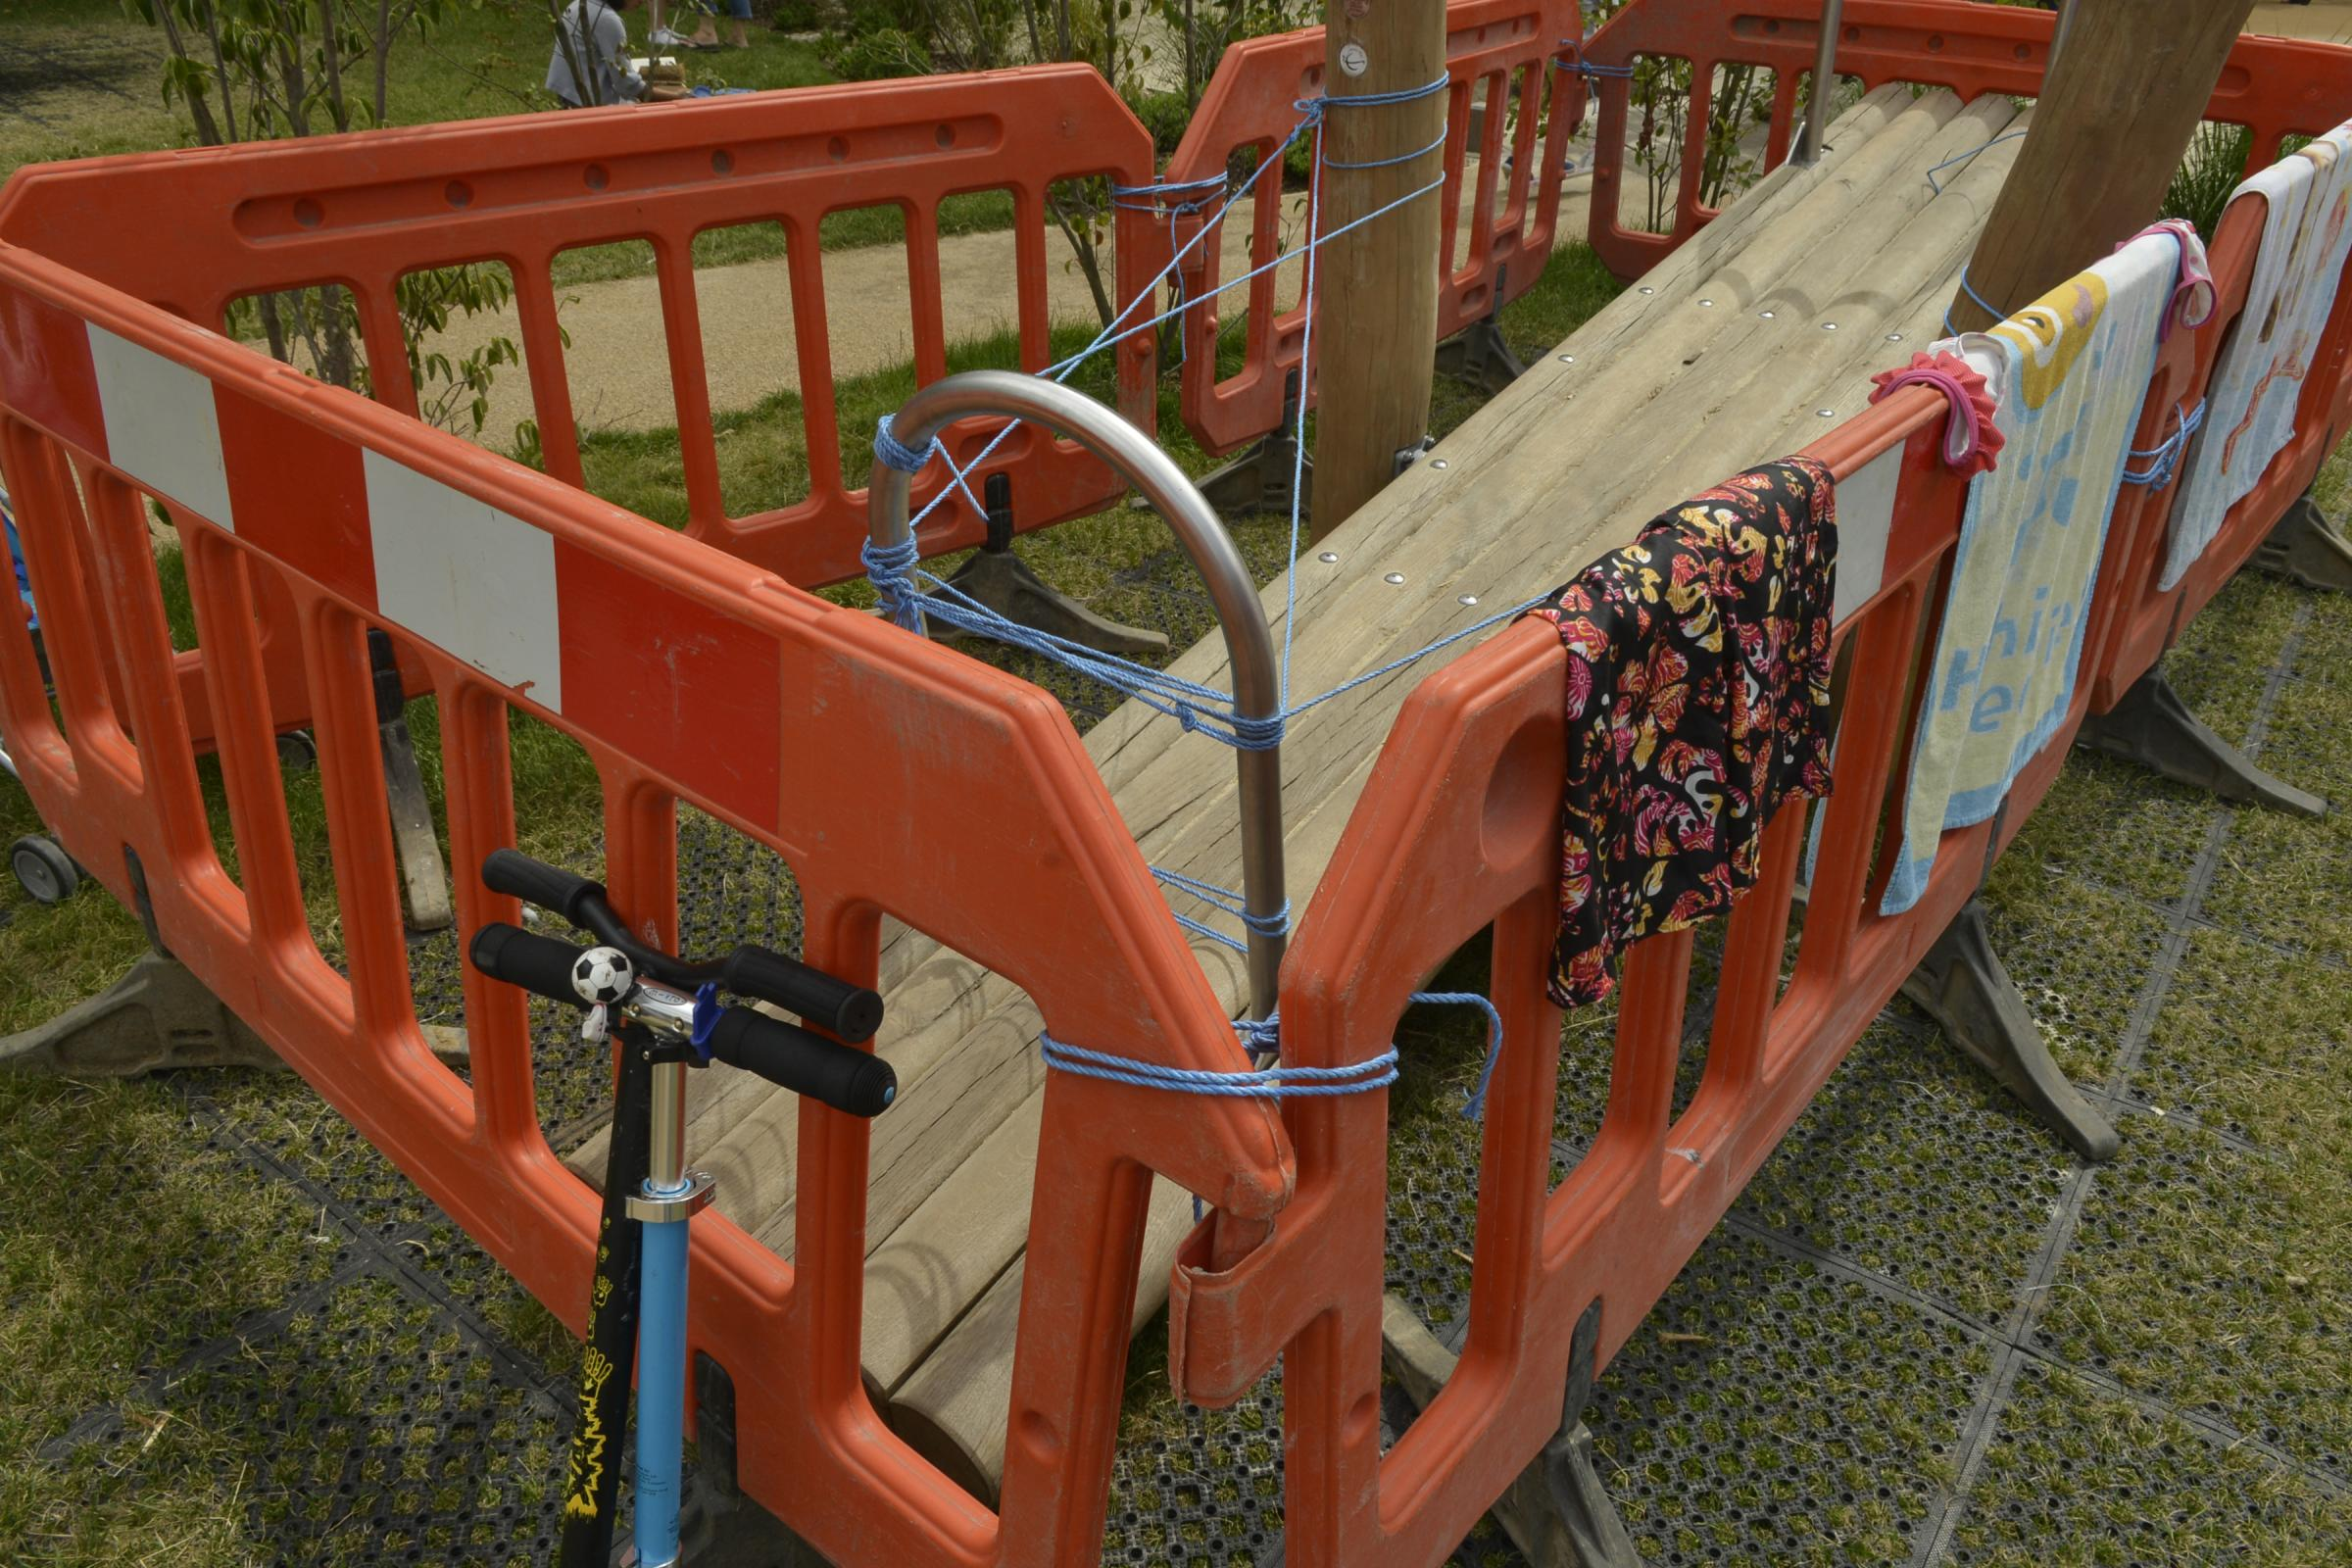 The seesaw at the Level had to be shut last August due to safety fears